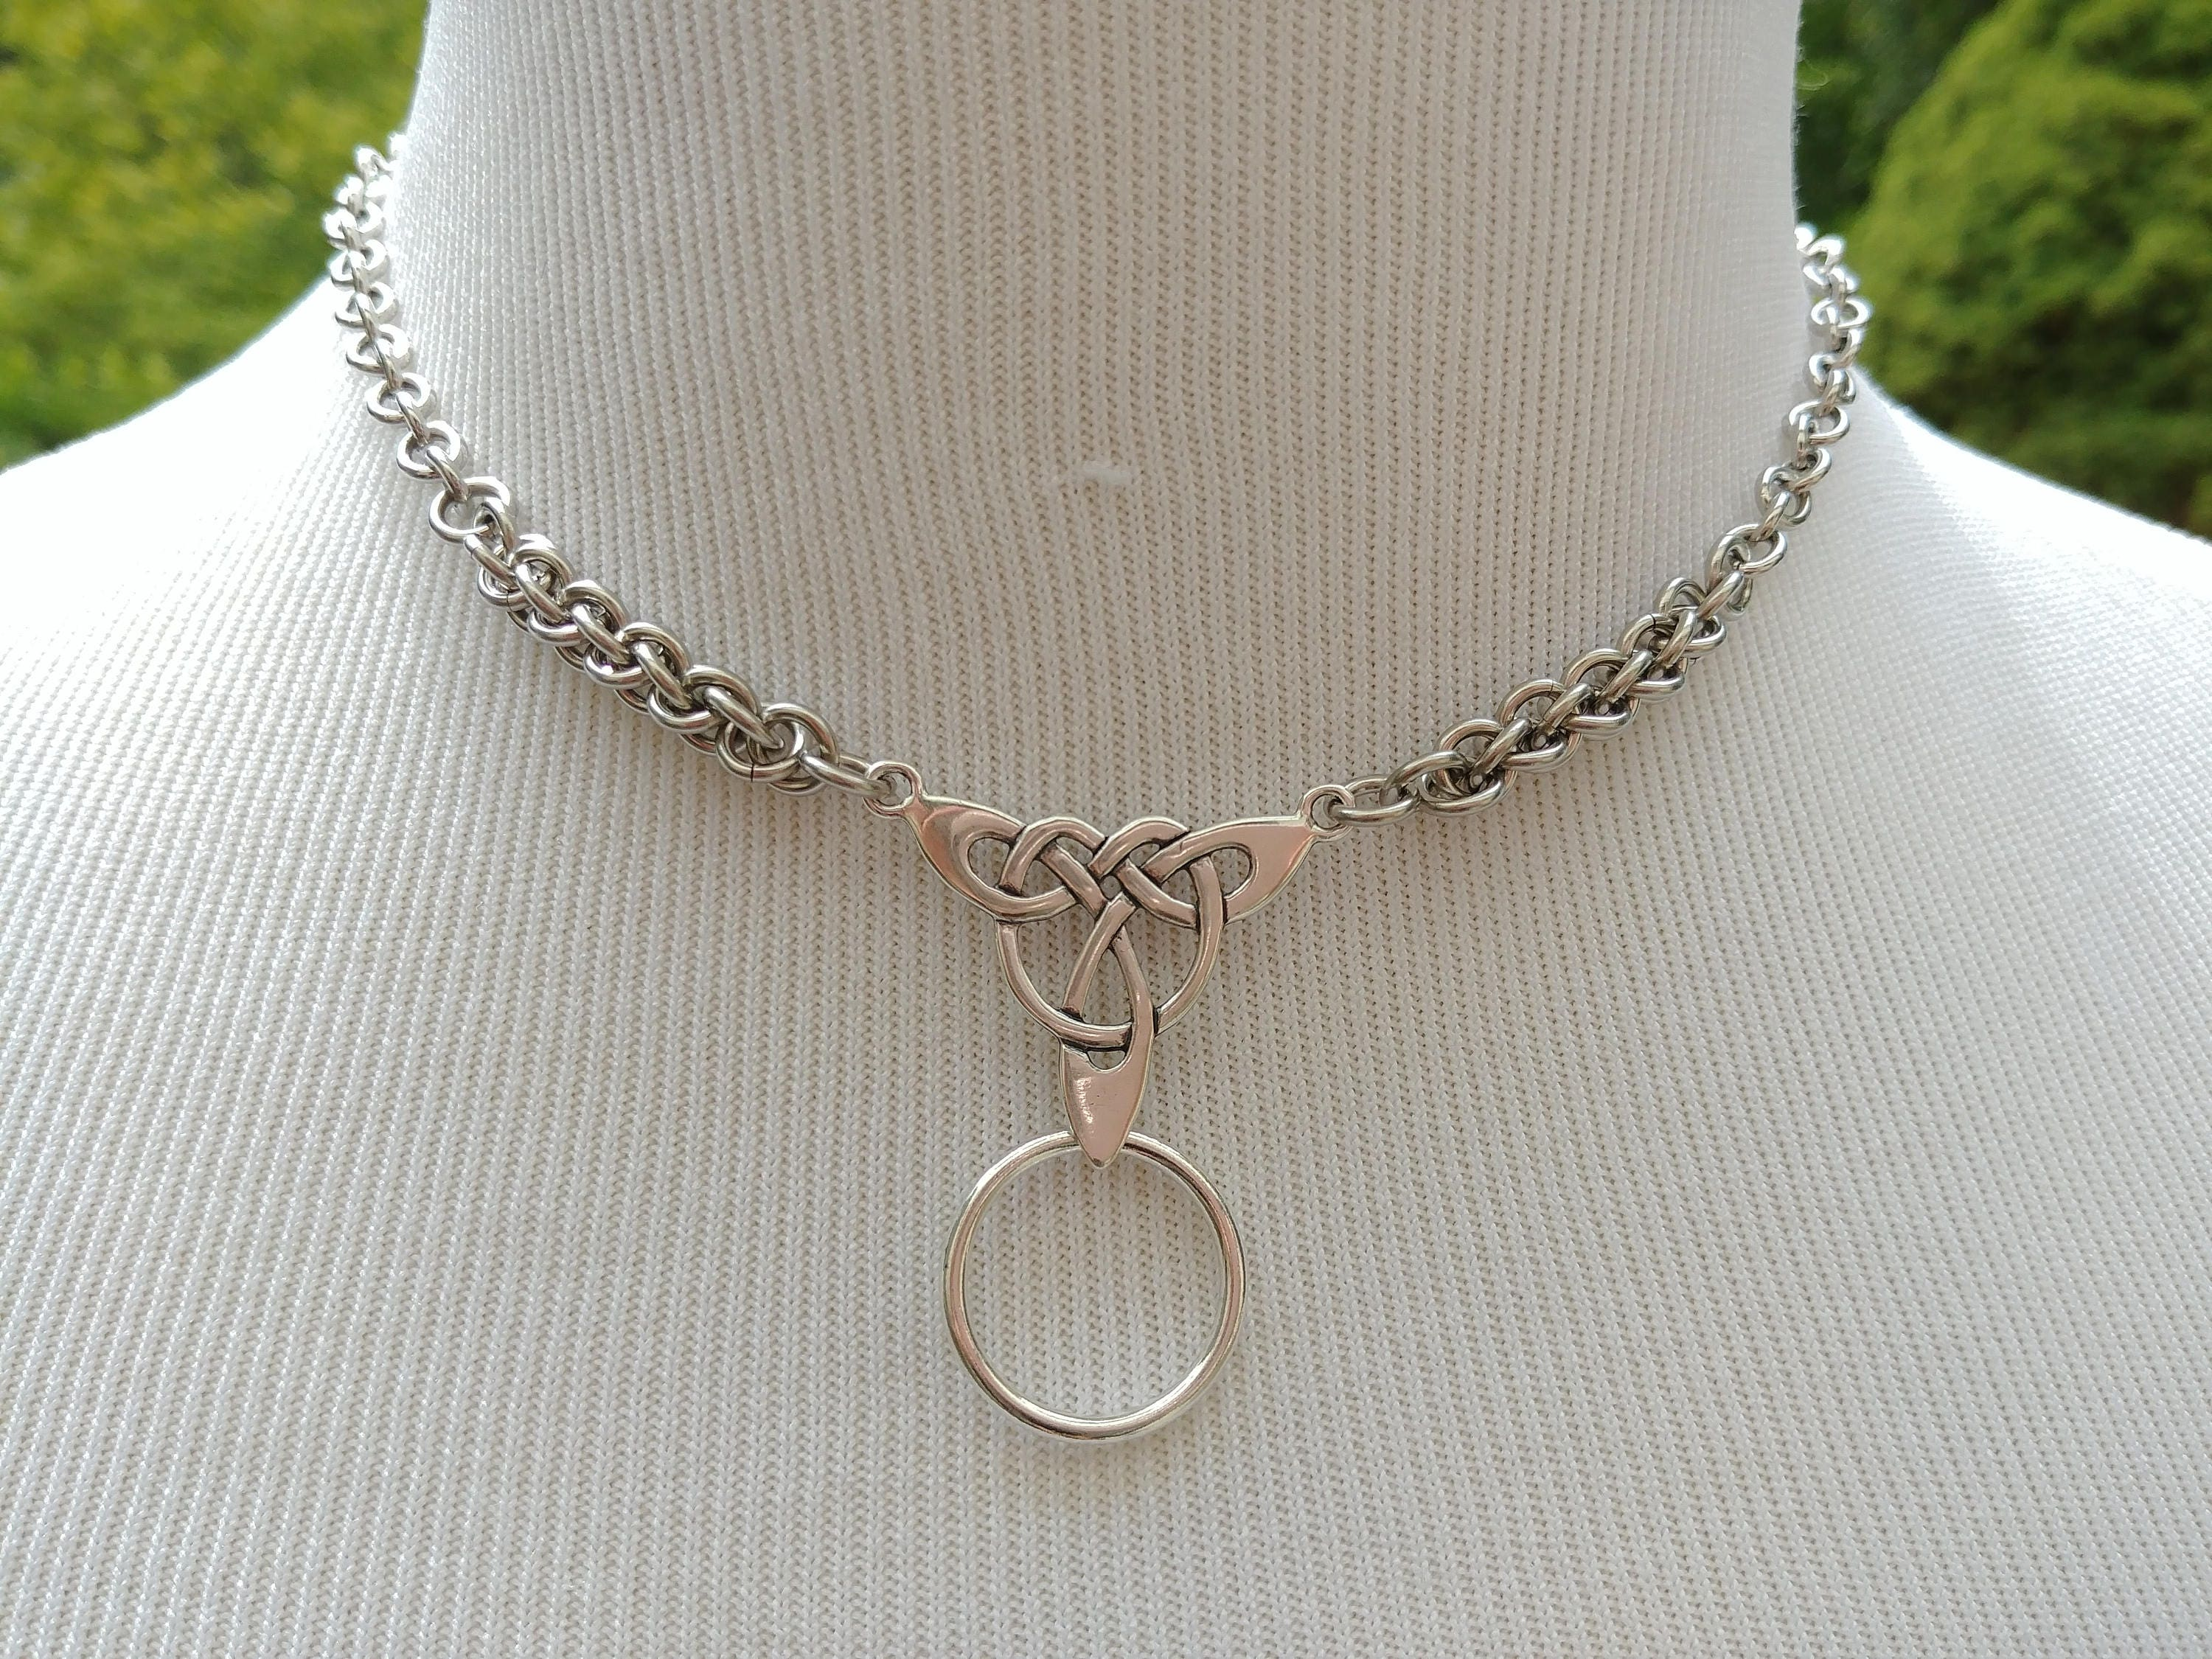 symbolic dragonfly muru necklace designers vermeil rose gold